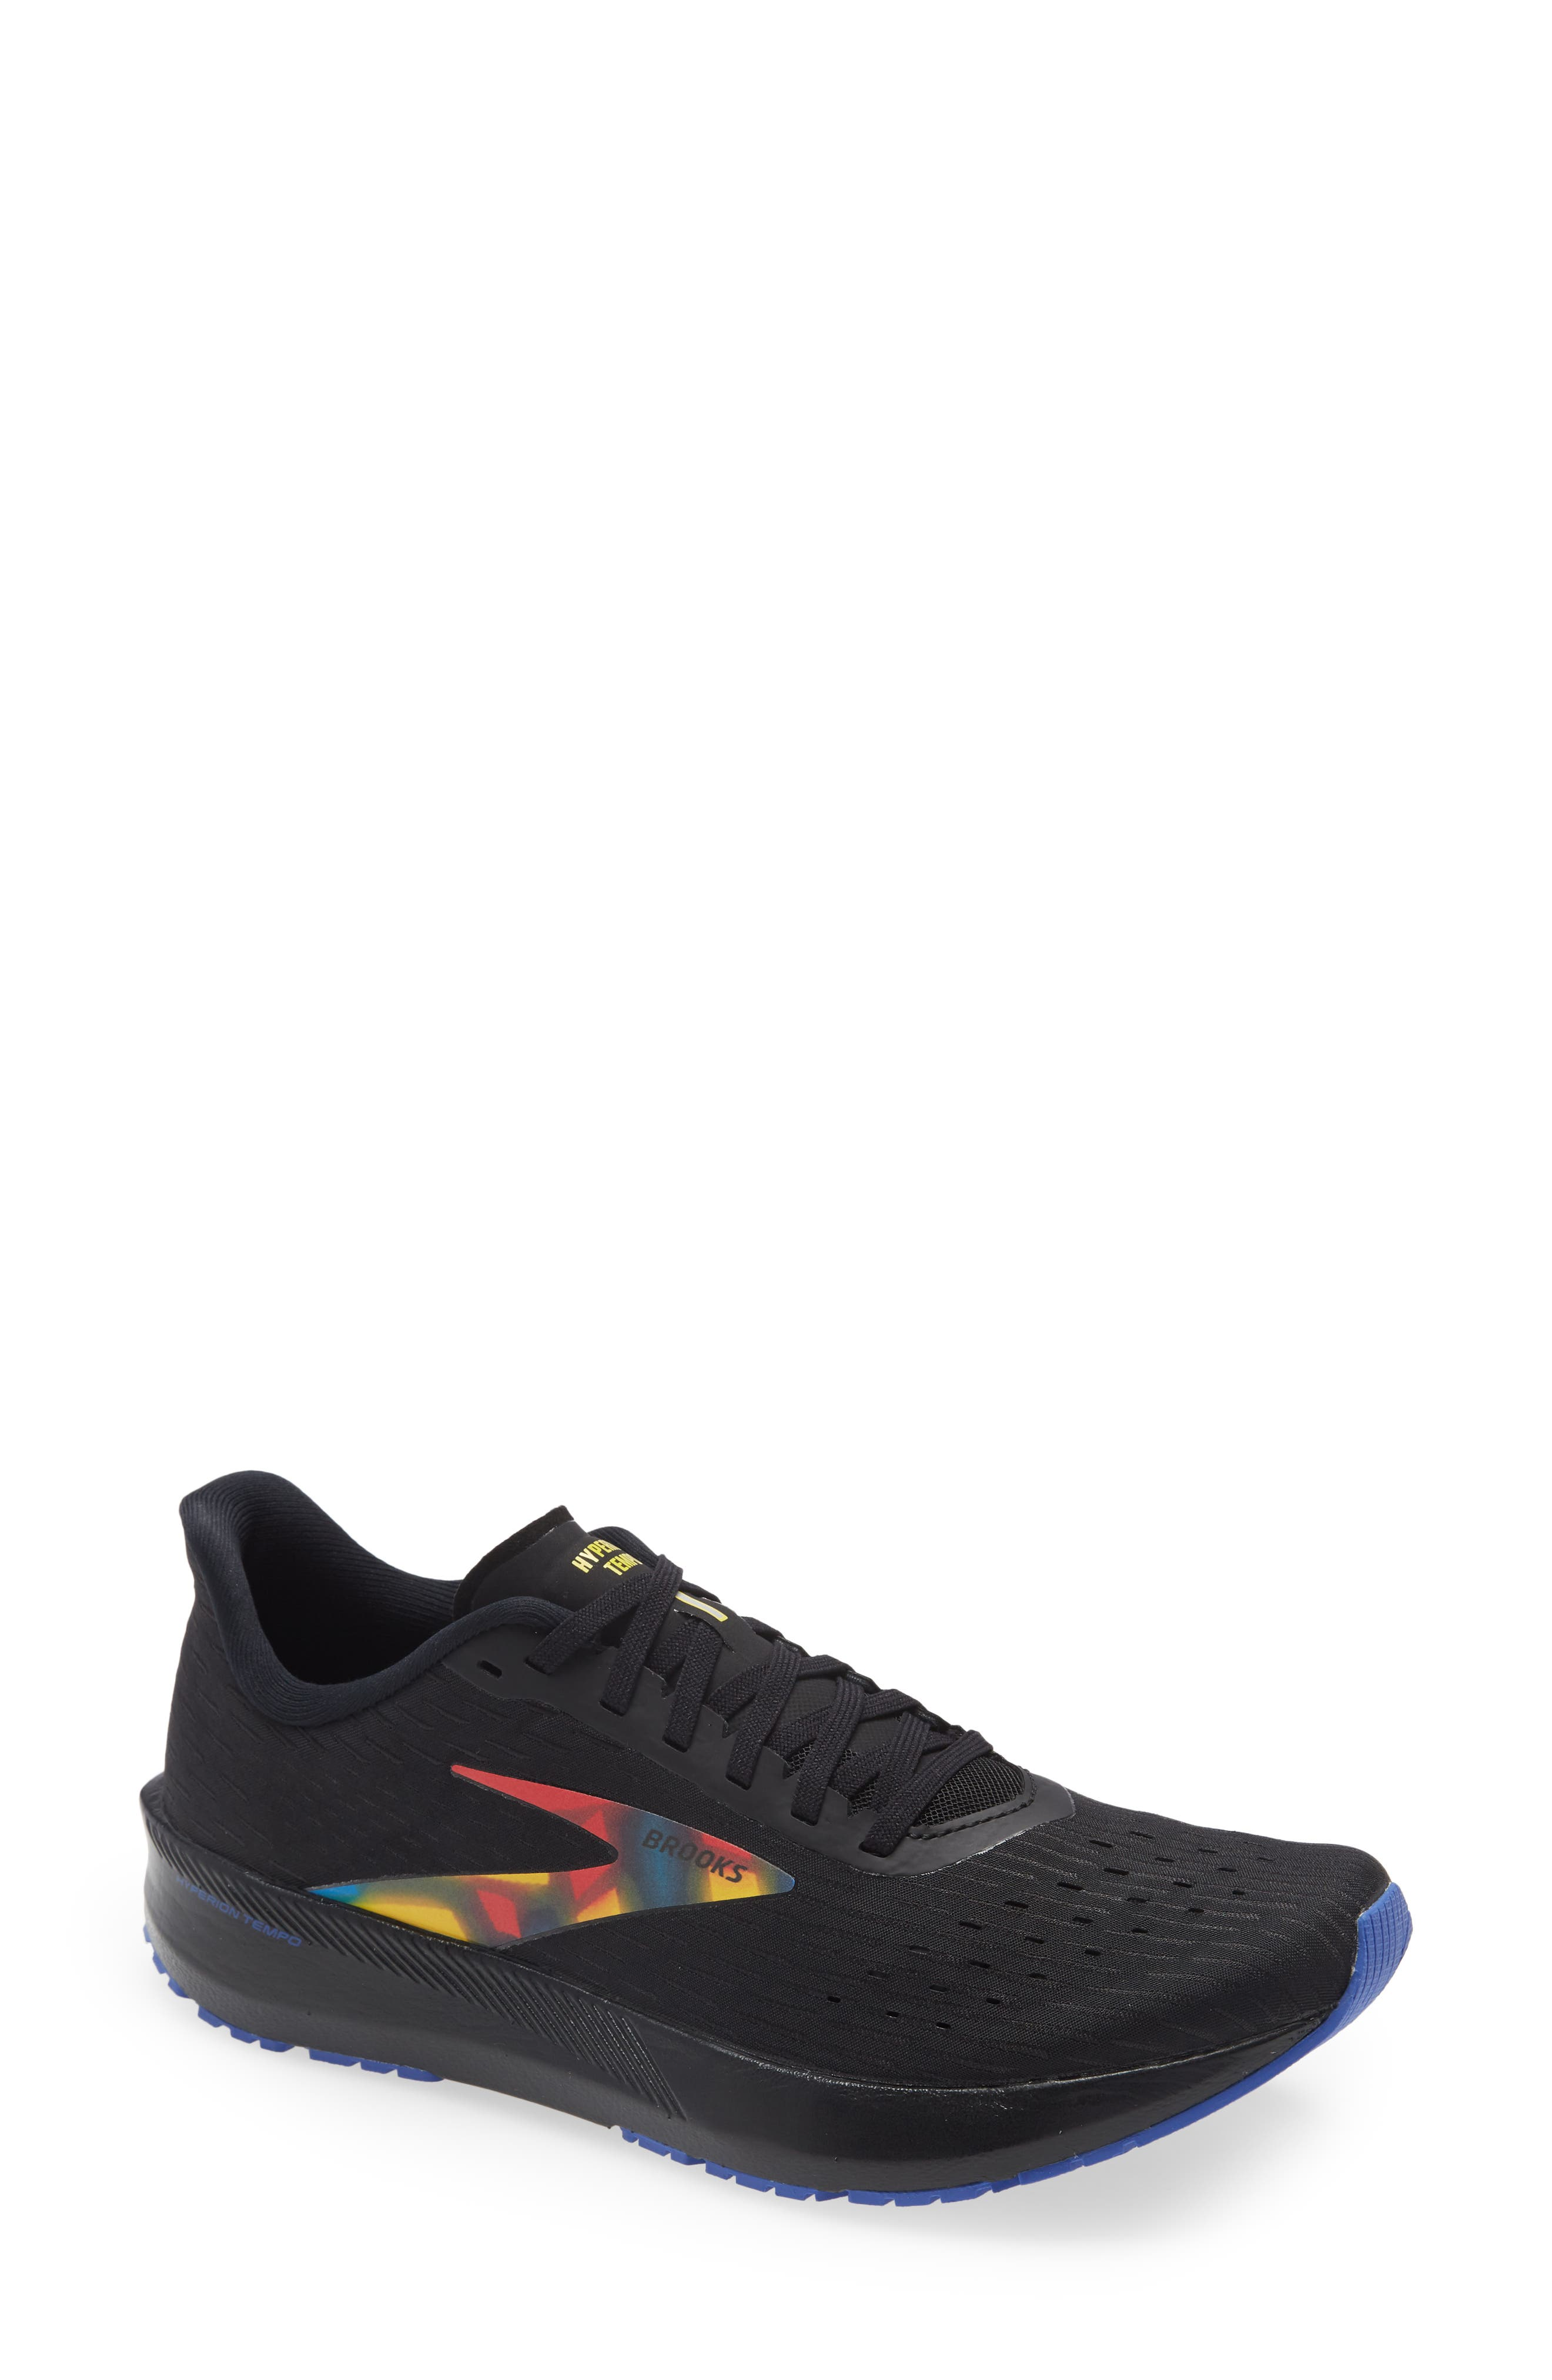 Hyperion Tempo Running Shoe